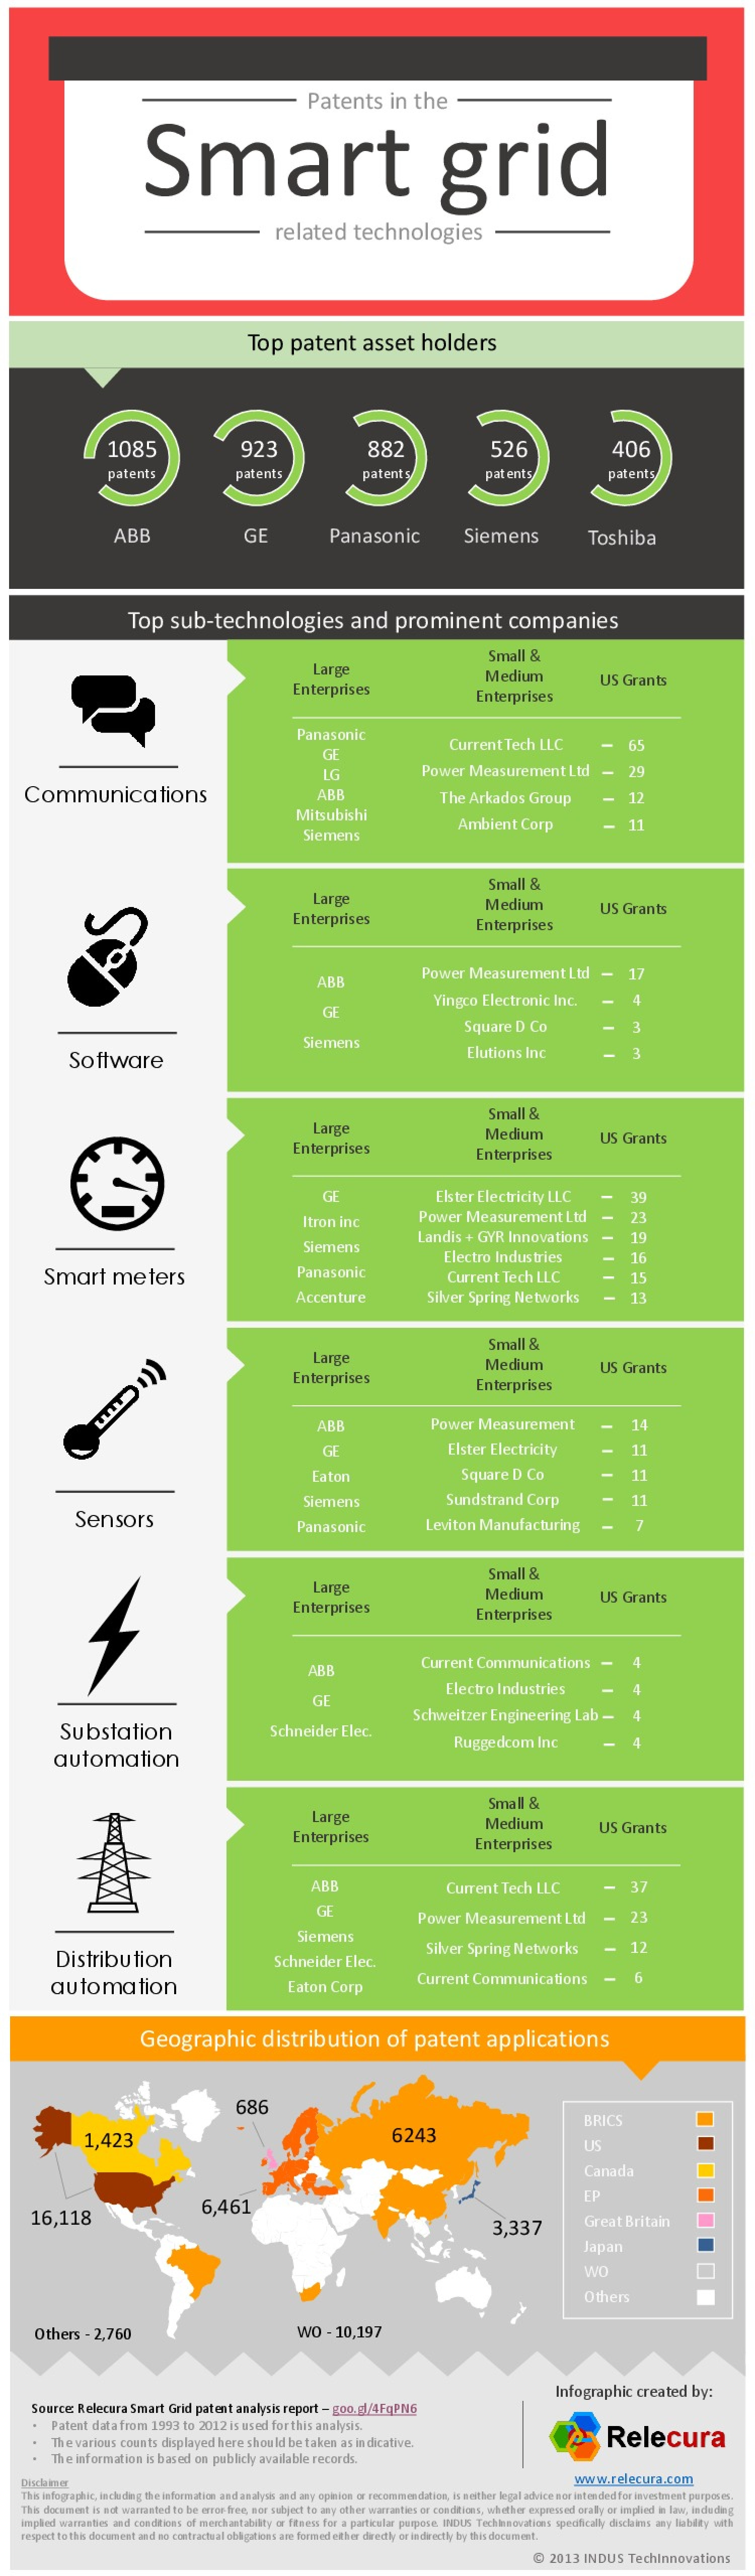 Patents in the Smart Grid Related Technologies Infographic